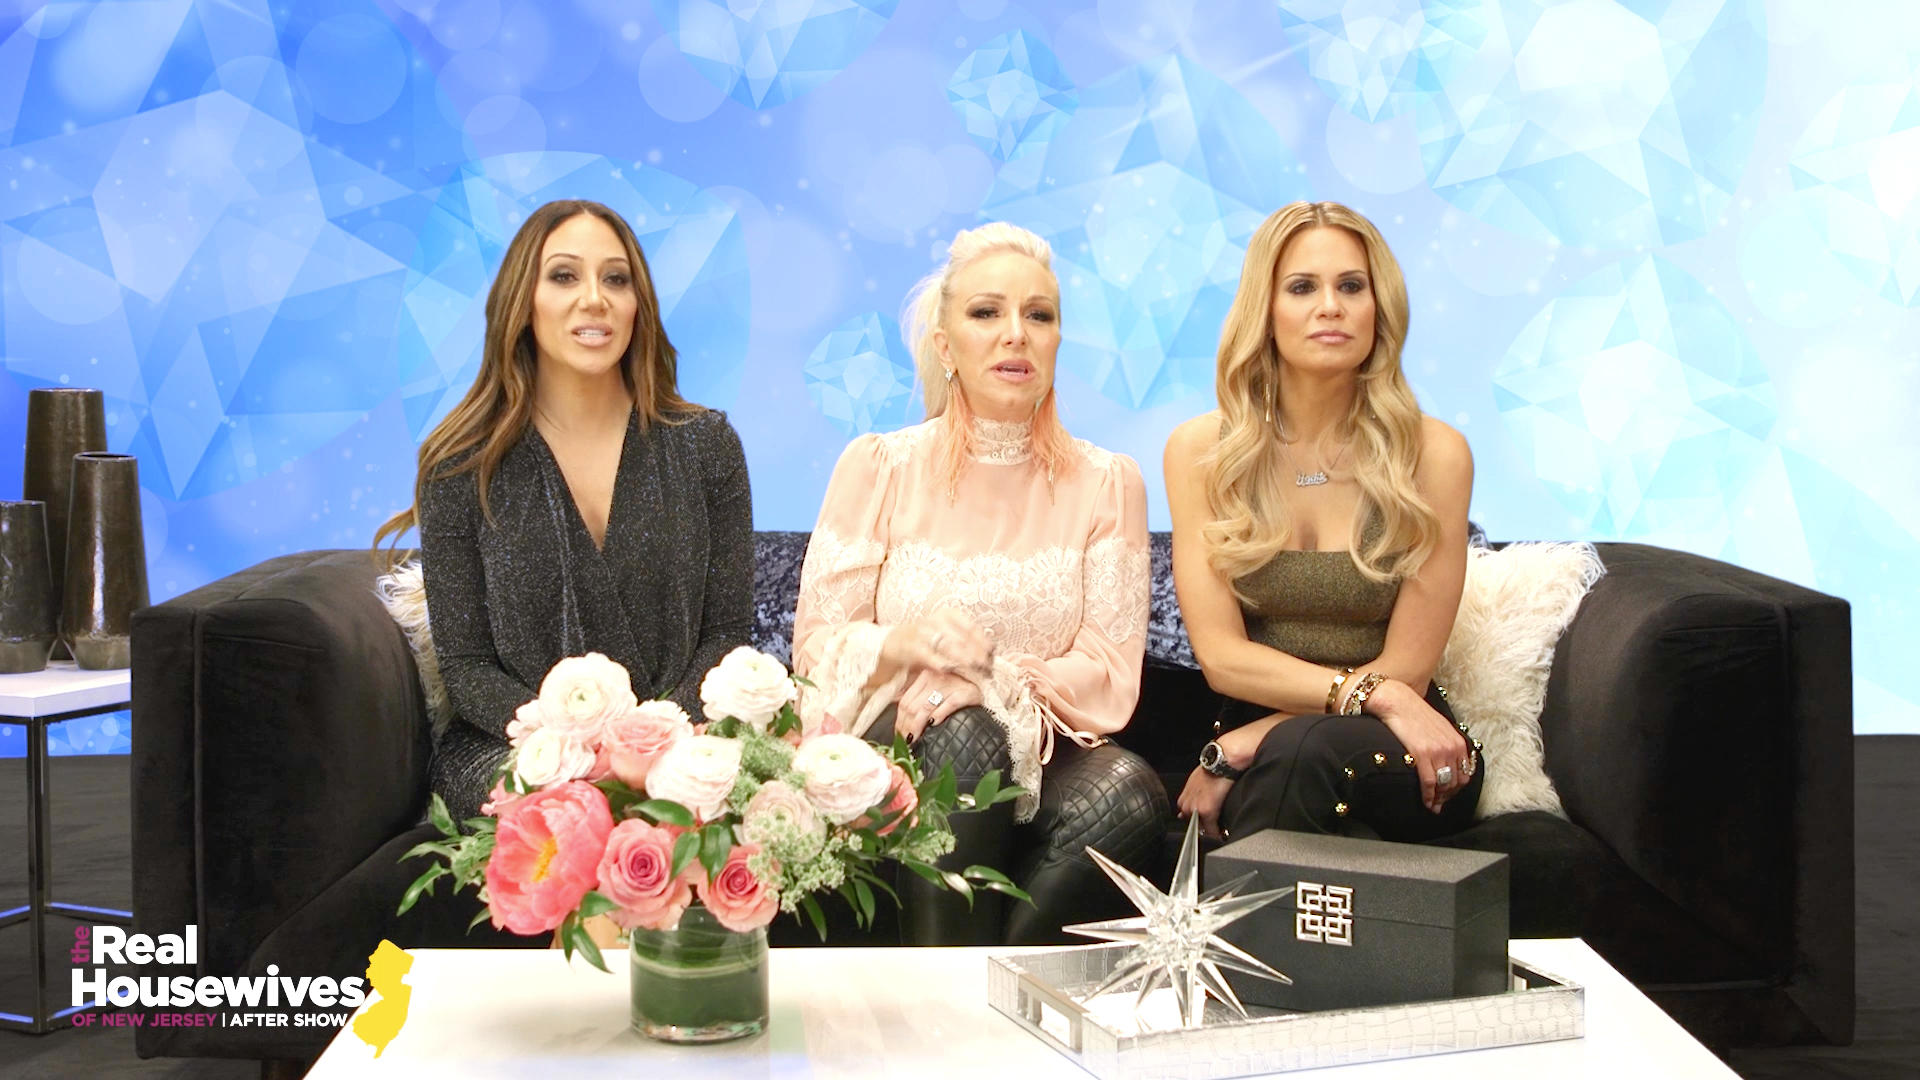 The Real Housewives of New Jersey Season 9 After Show | The